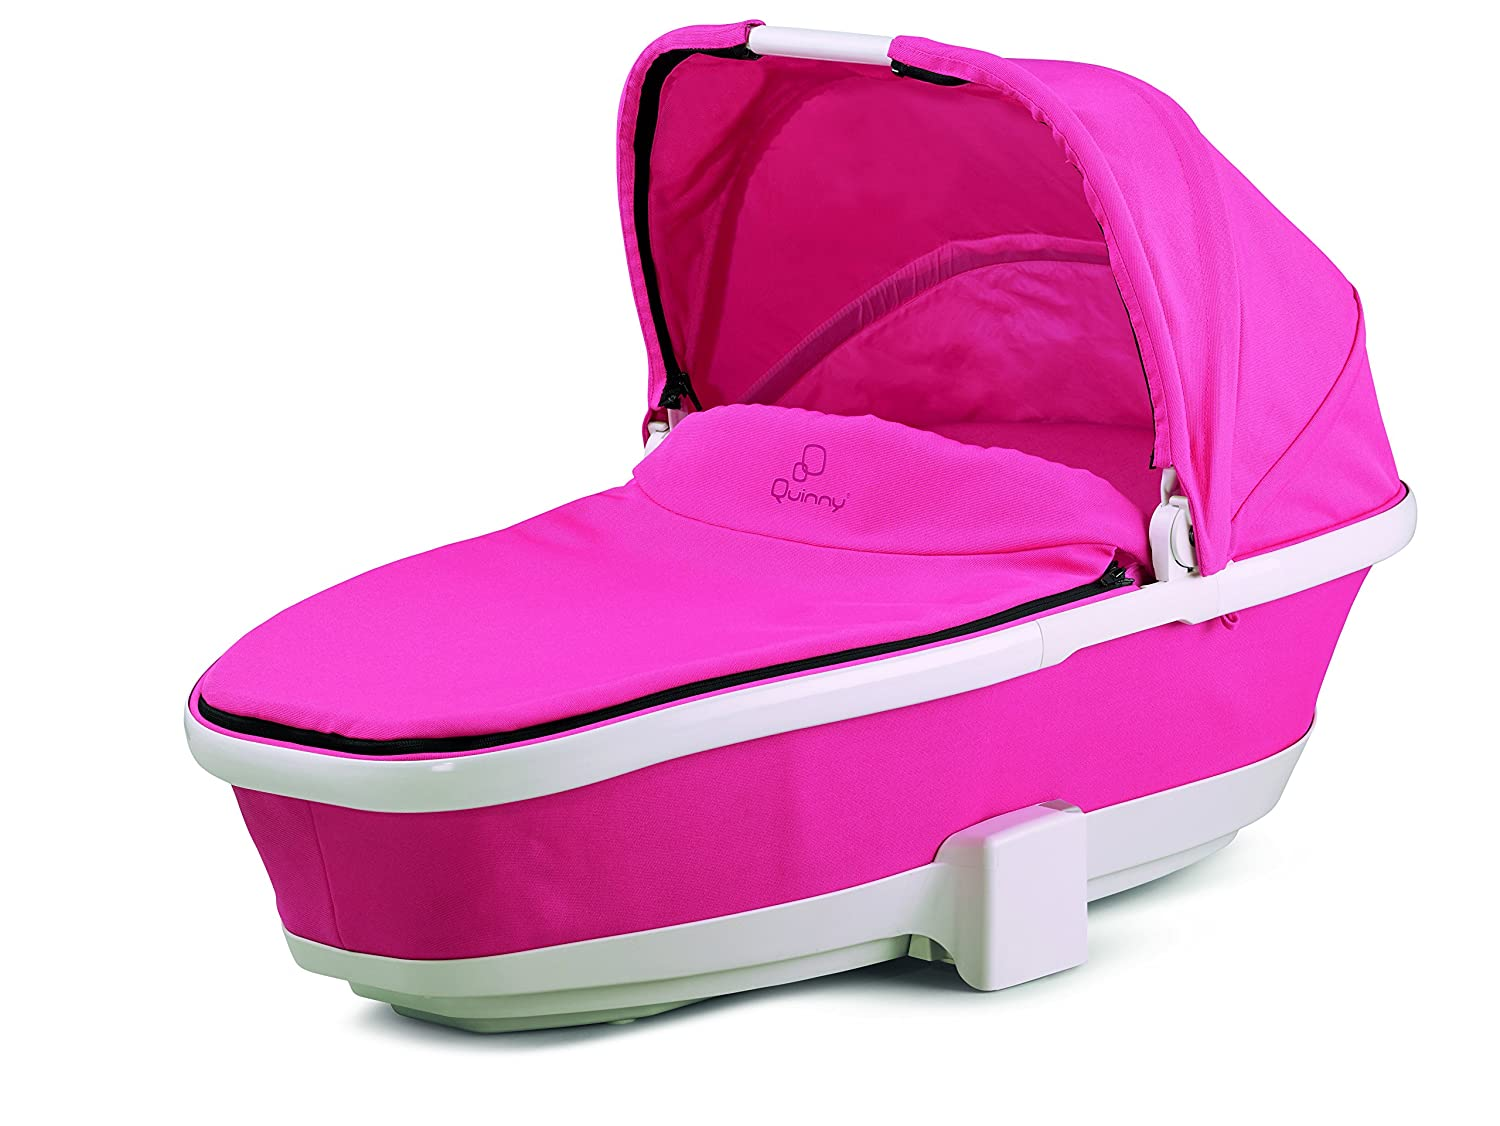 Quinny Tukk Foldable Carrier-Pink Passion Dorel Juvenile Canada CV256BYP